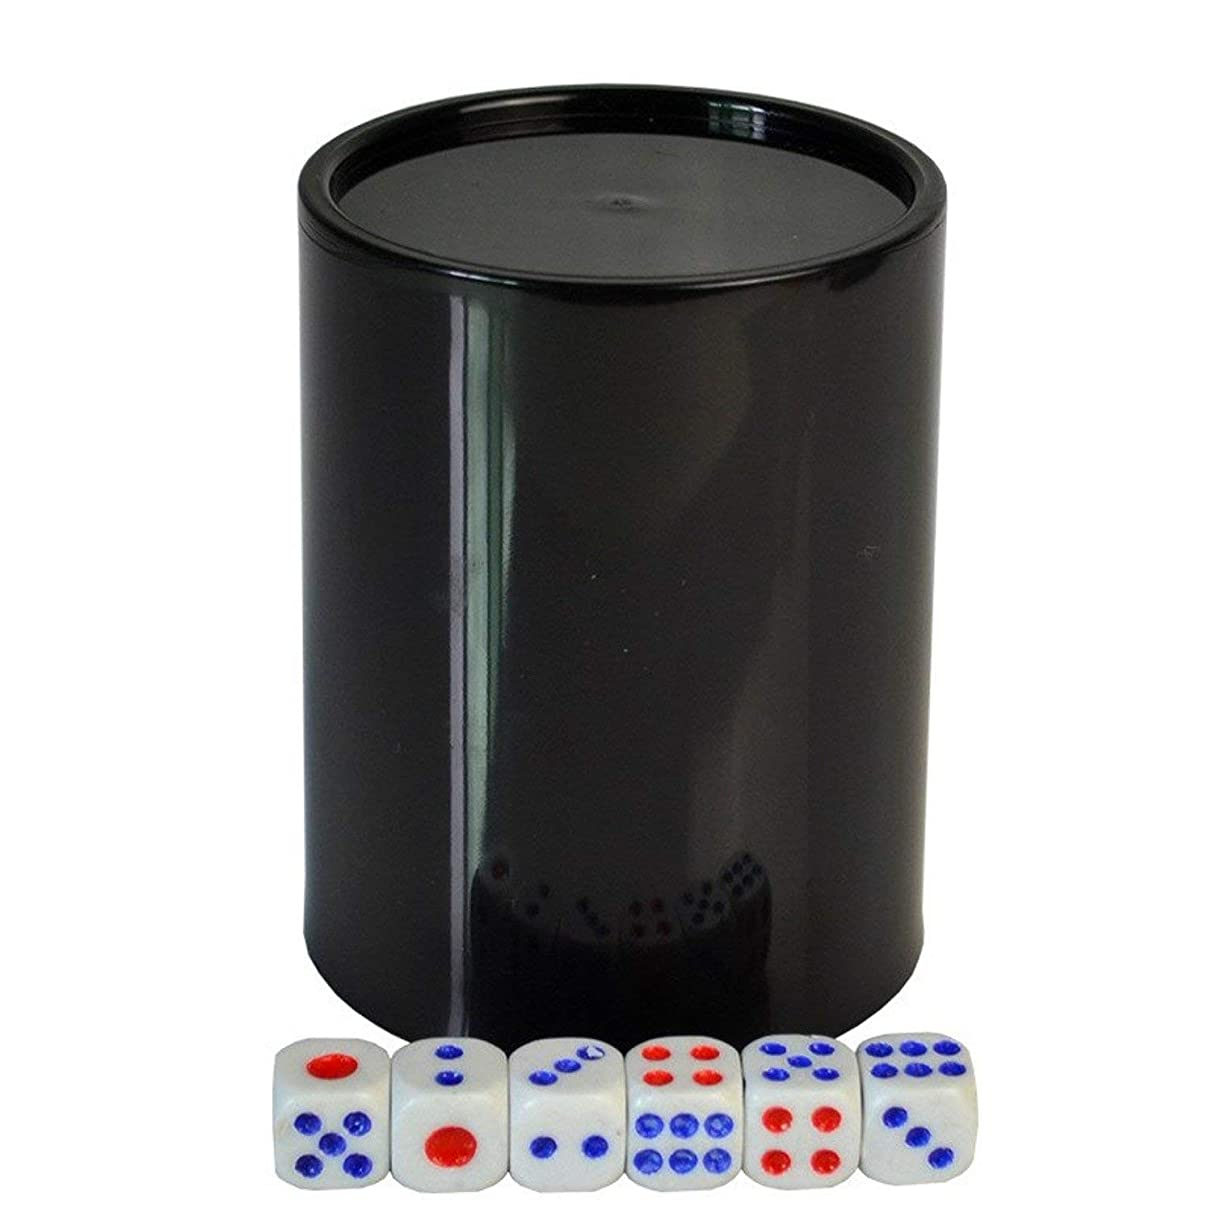 Colorful Gambling Casino Plastic Dice Cup with 6pcs #13 White Dices Texas Hold'em Poker Party Game Dice Cup Game